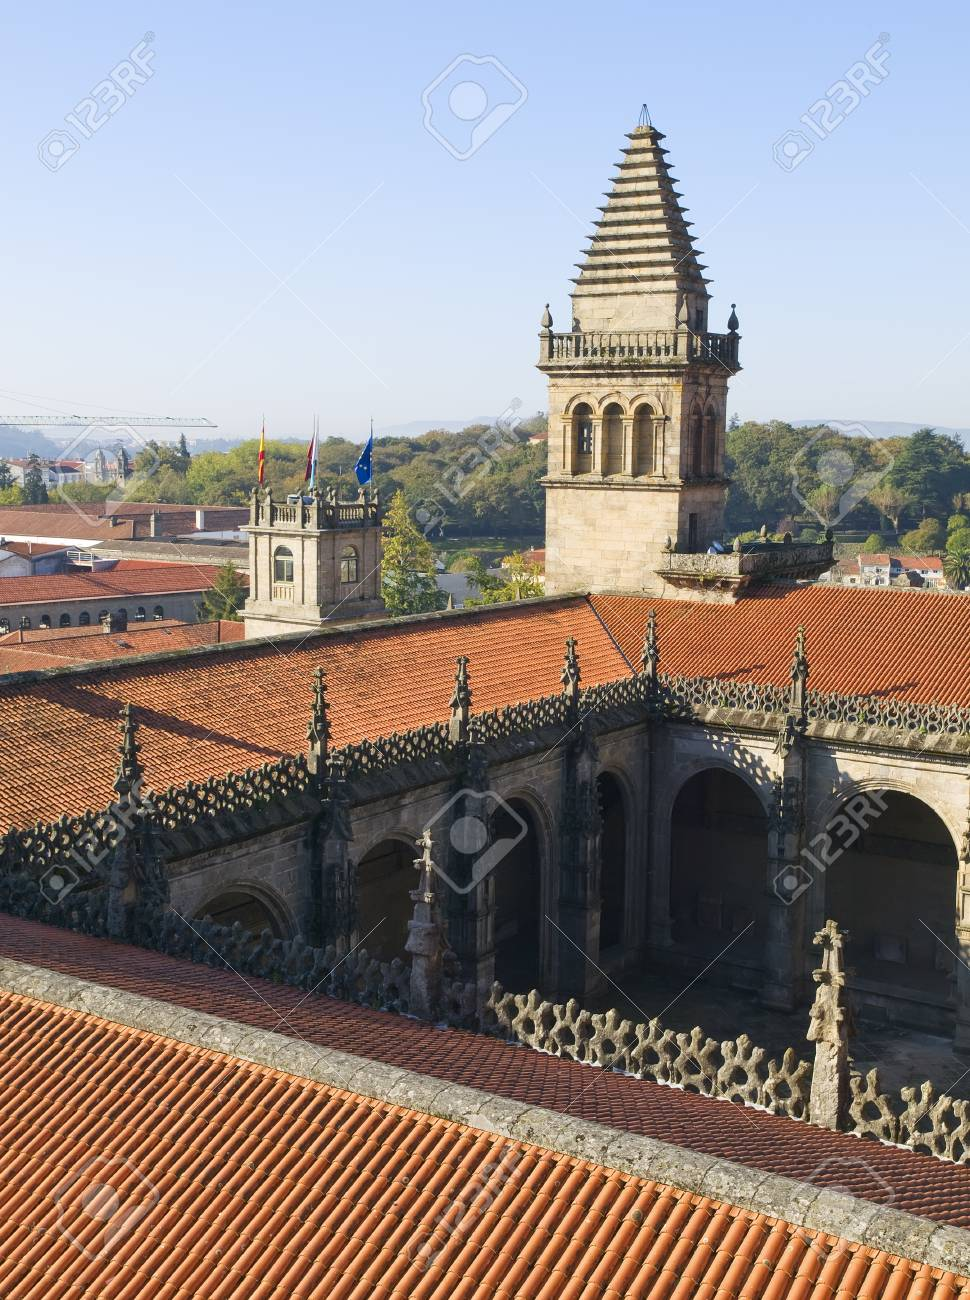 SPAIN - OCTOBER 19: Cathedral of Santiago de Compostela on October 19, 2008 in Santiago de Compostela, La Coruna. Photo taken on the roof of the cathedral, a restricted area. Stock Photo - 17297917